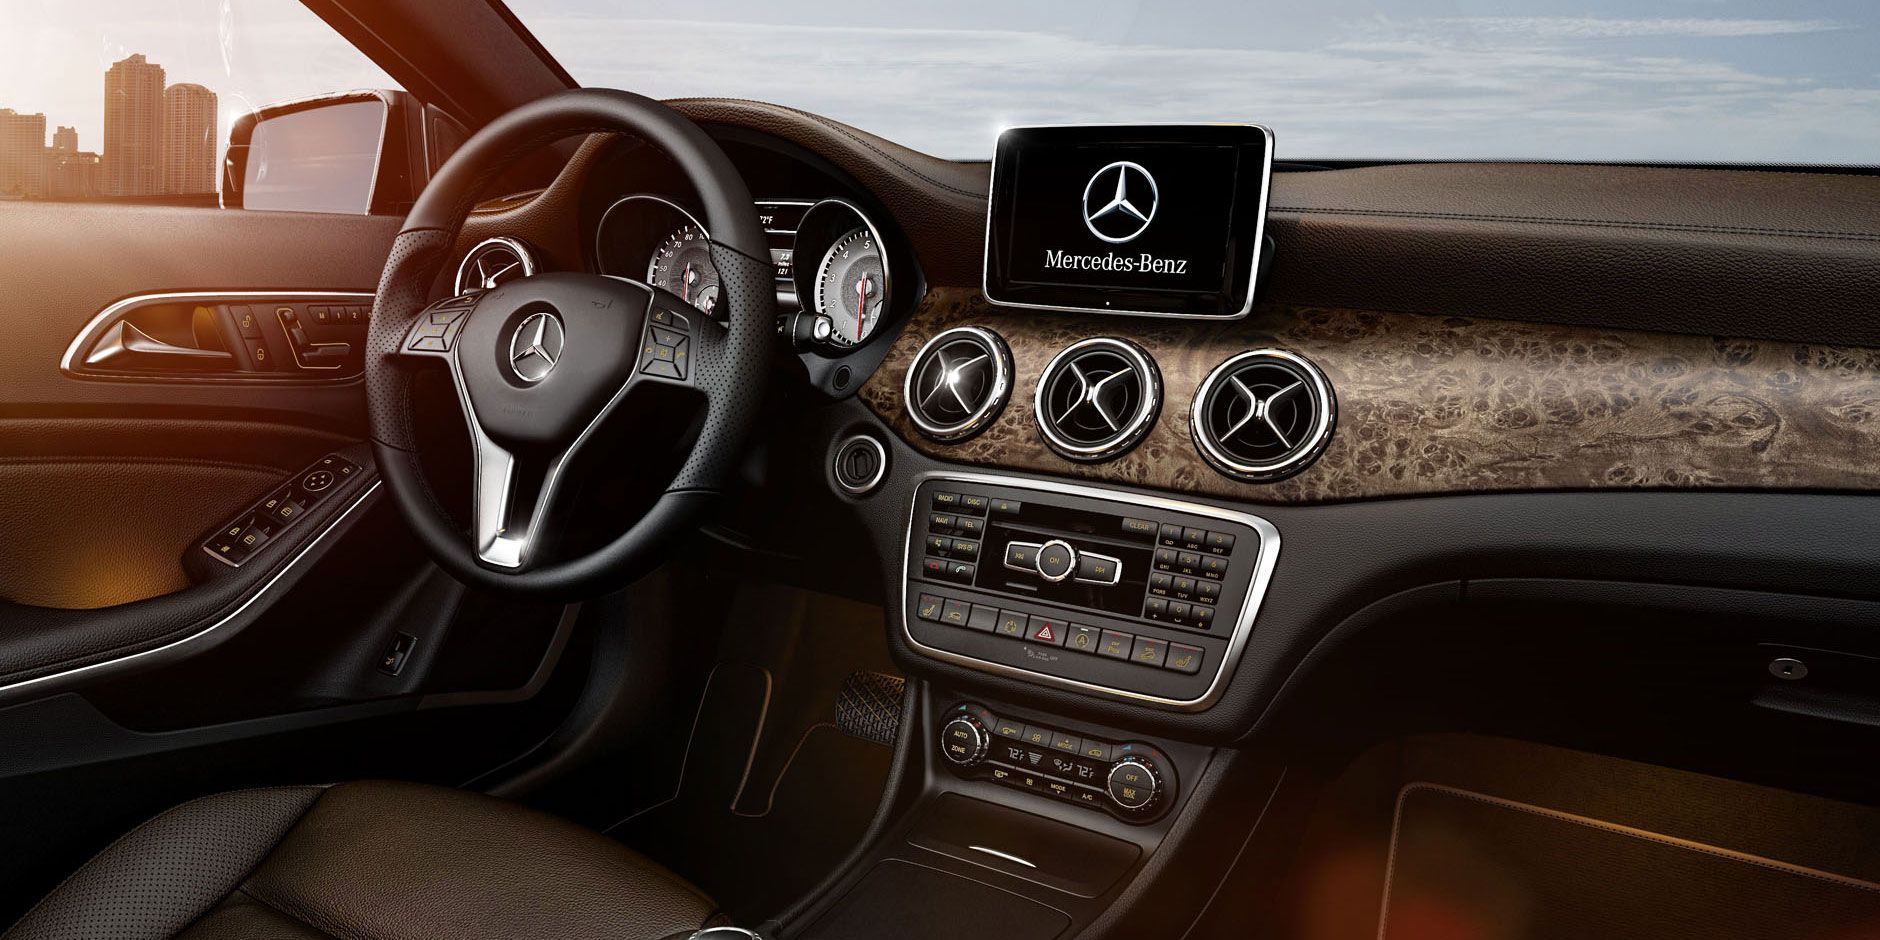 Stylish New Compact Suv Interior From 2015 Mercedes Benz Gla Class